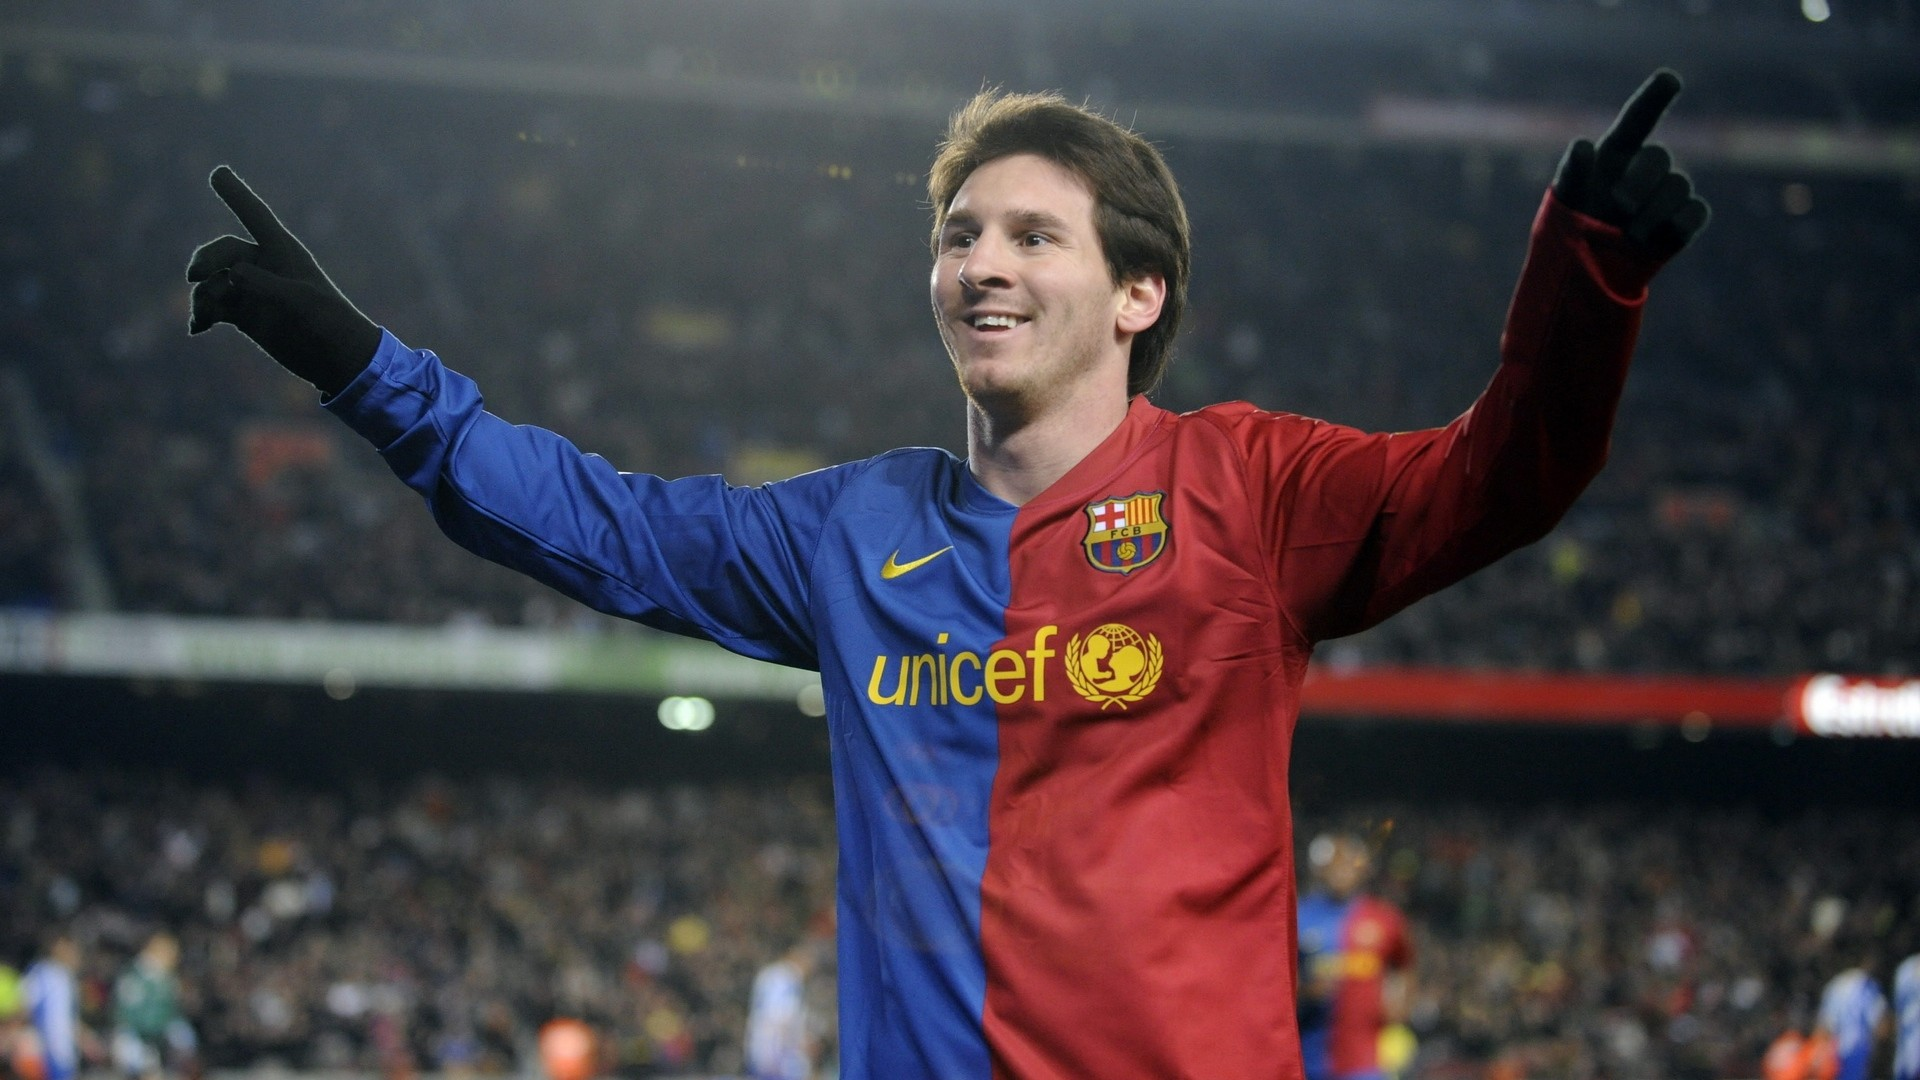 Lionel Messi Player